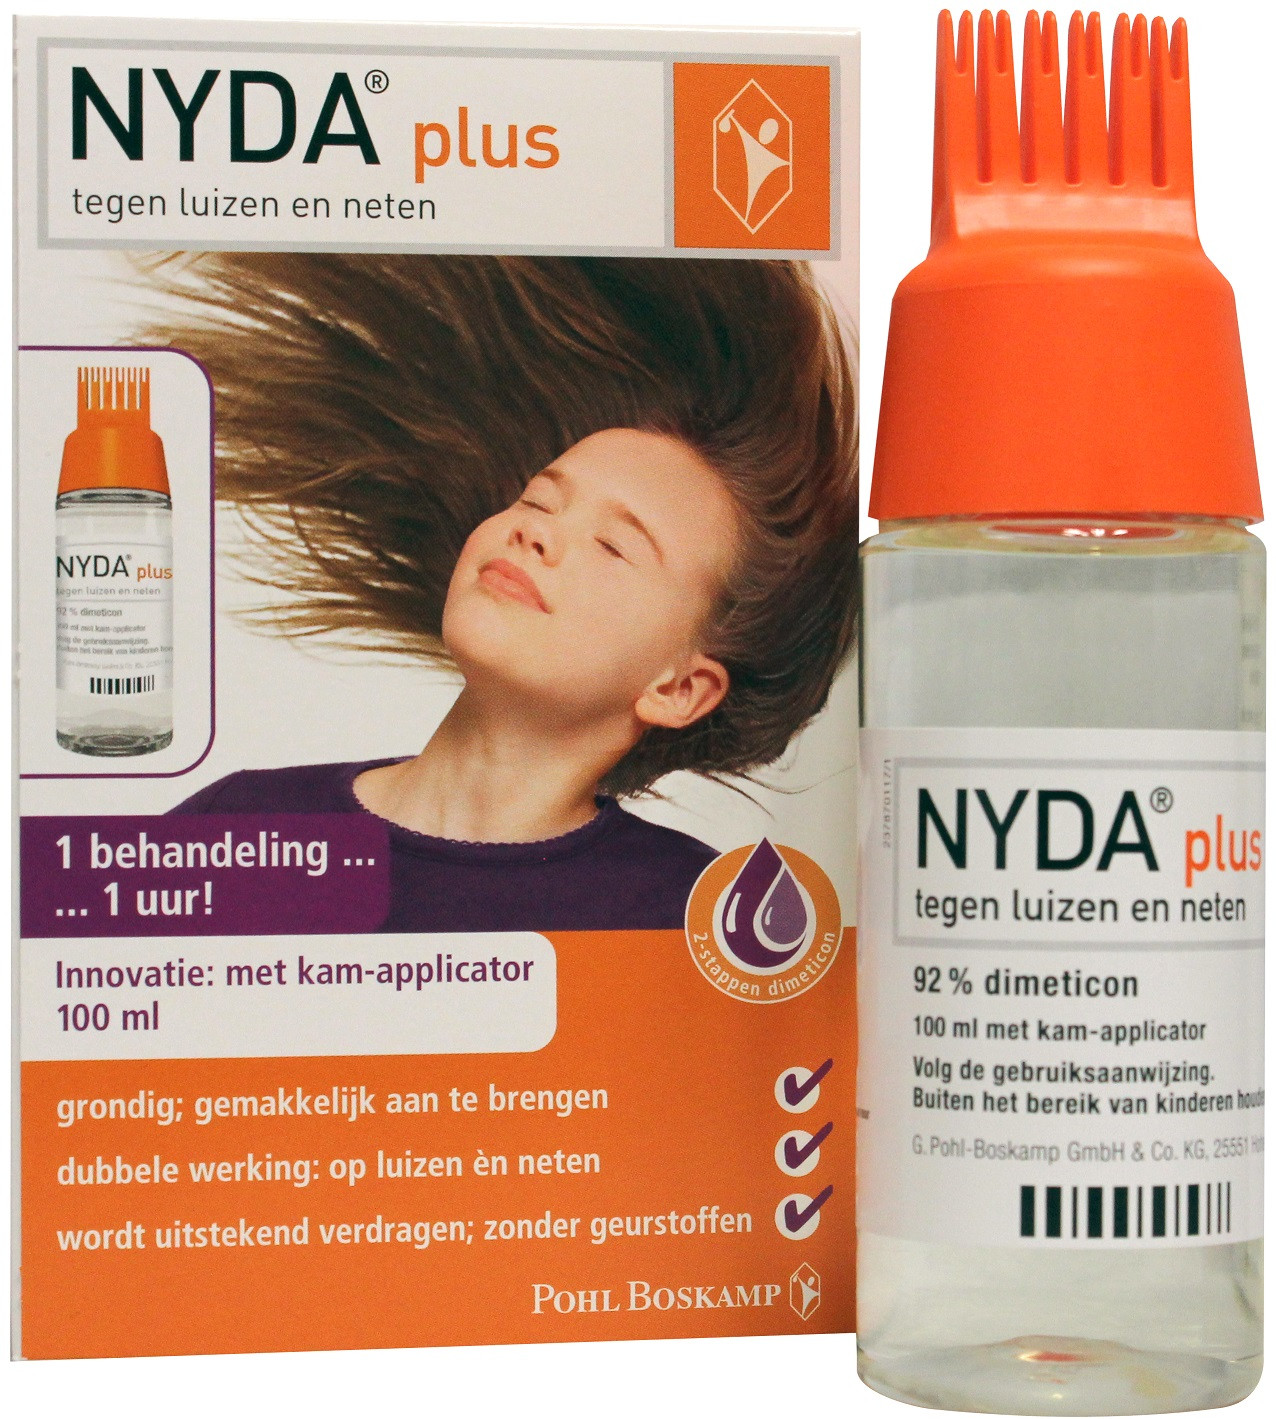 NYDA plus met kam-applicator